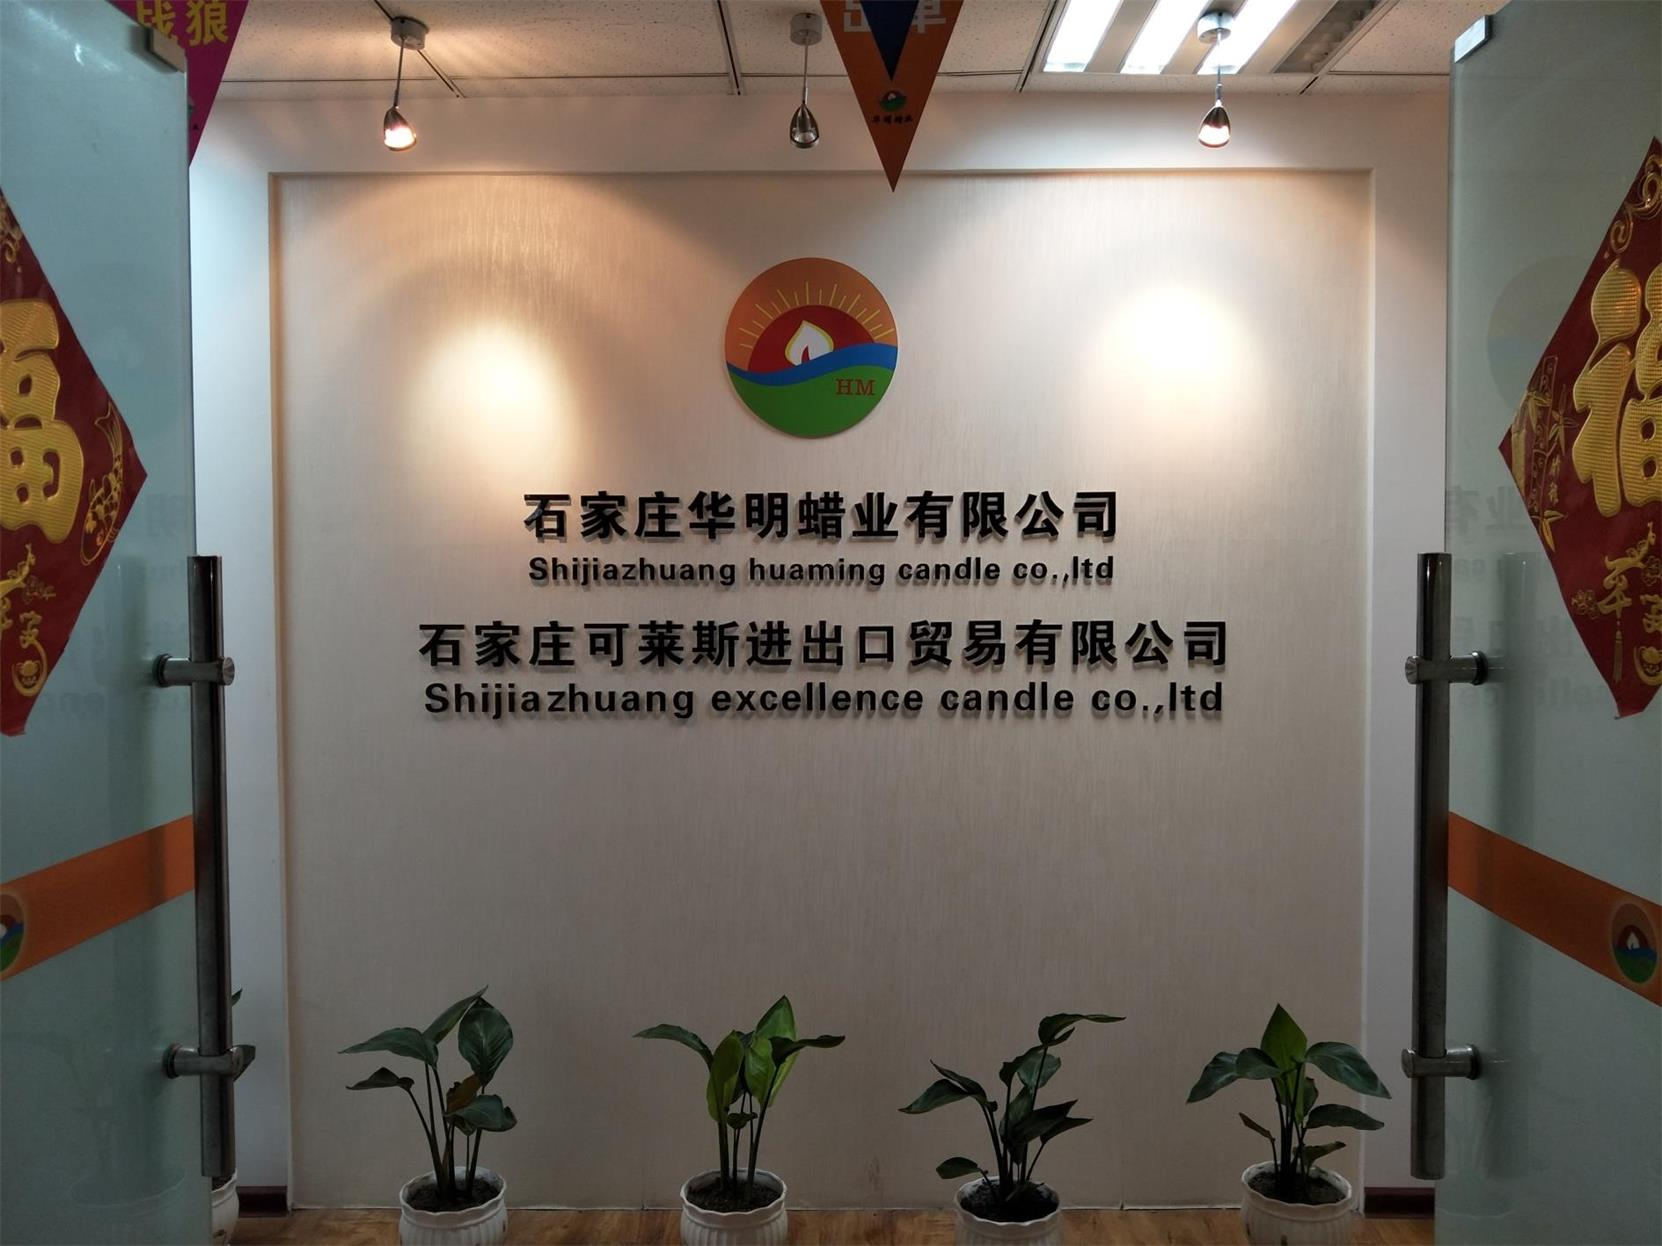 SHIJIAZHUANG HUAMING CANDLE CO.,LTD